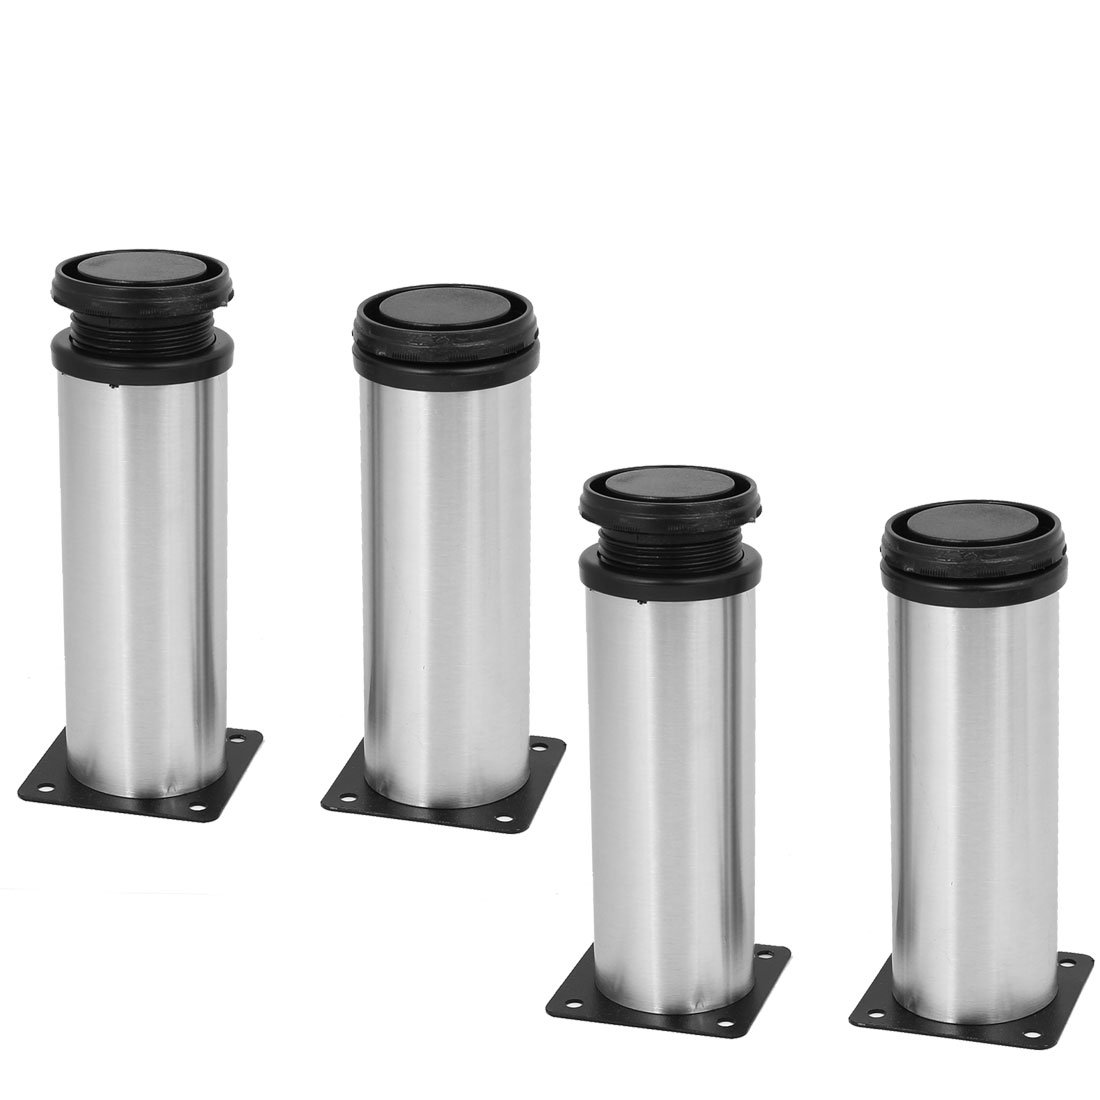 uxcell Kitchen Furniture Cabinet 50mm x 150mm Adjustable Feet Leg Round Stand 4PCS by uxcell (Image #1)